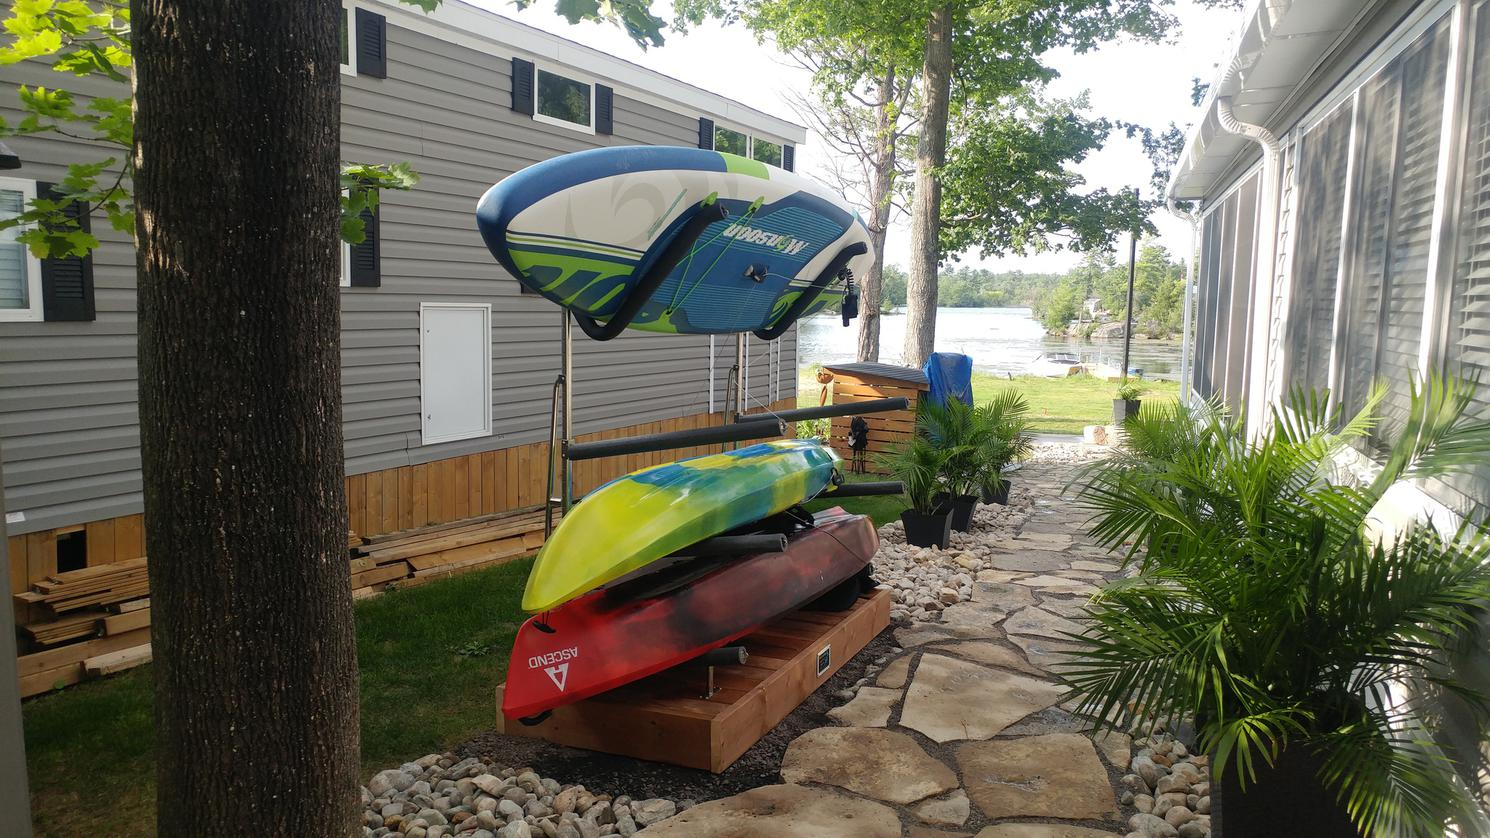 2021 Magma SUP Rack - Floor/Deck model with 2 sets Straight Arms